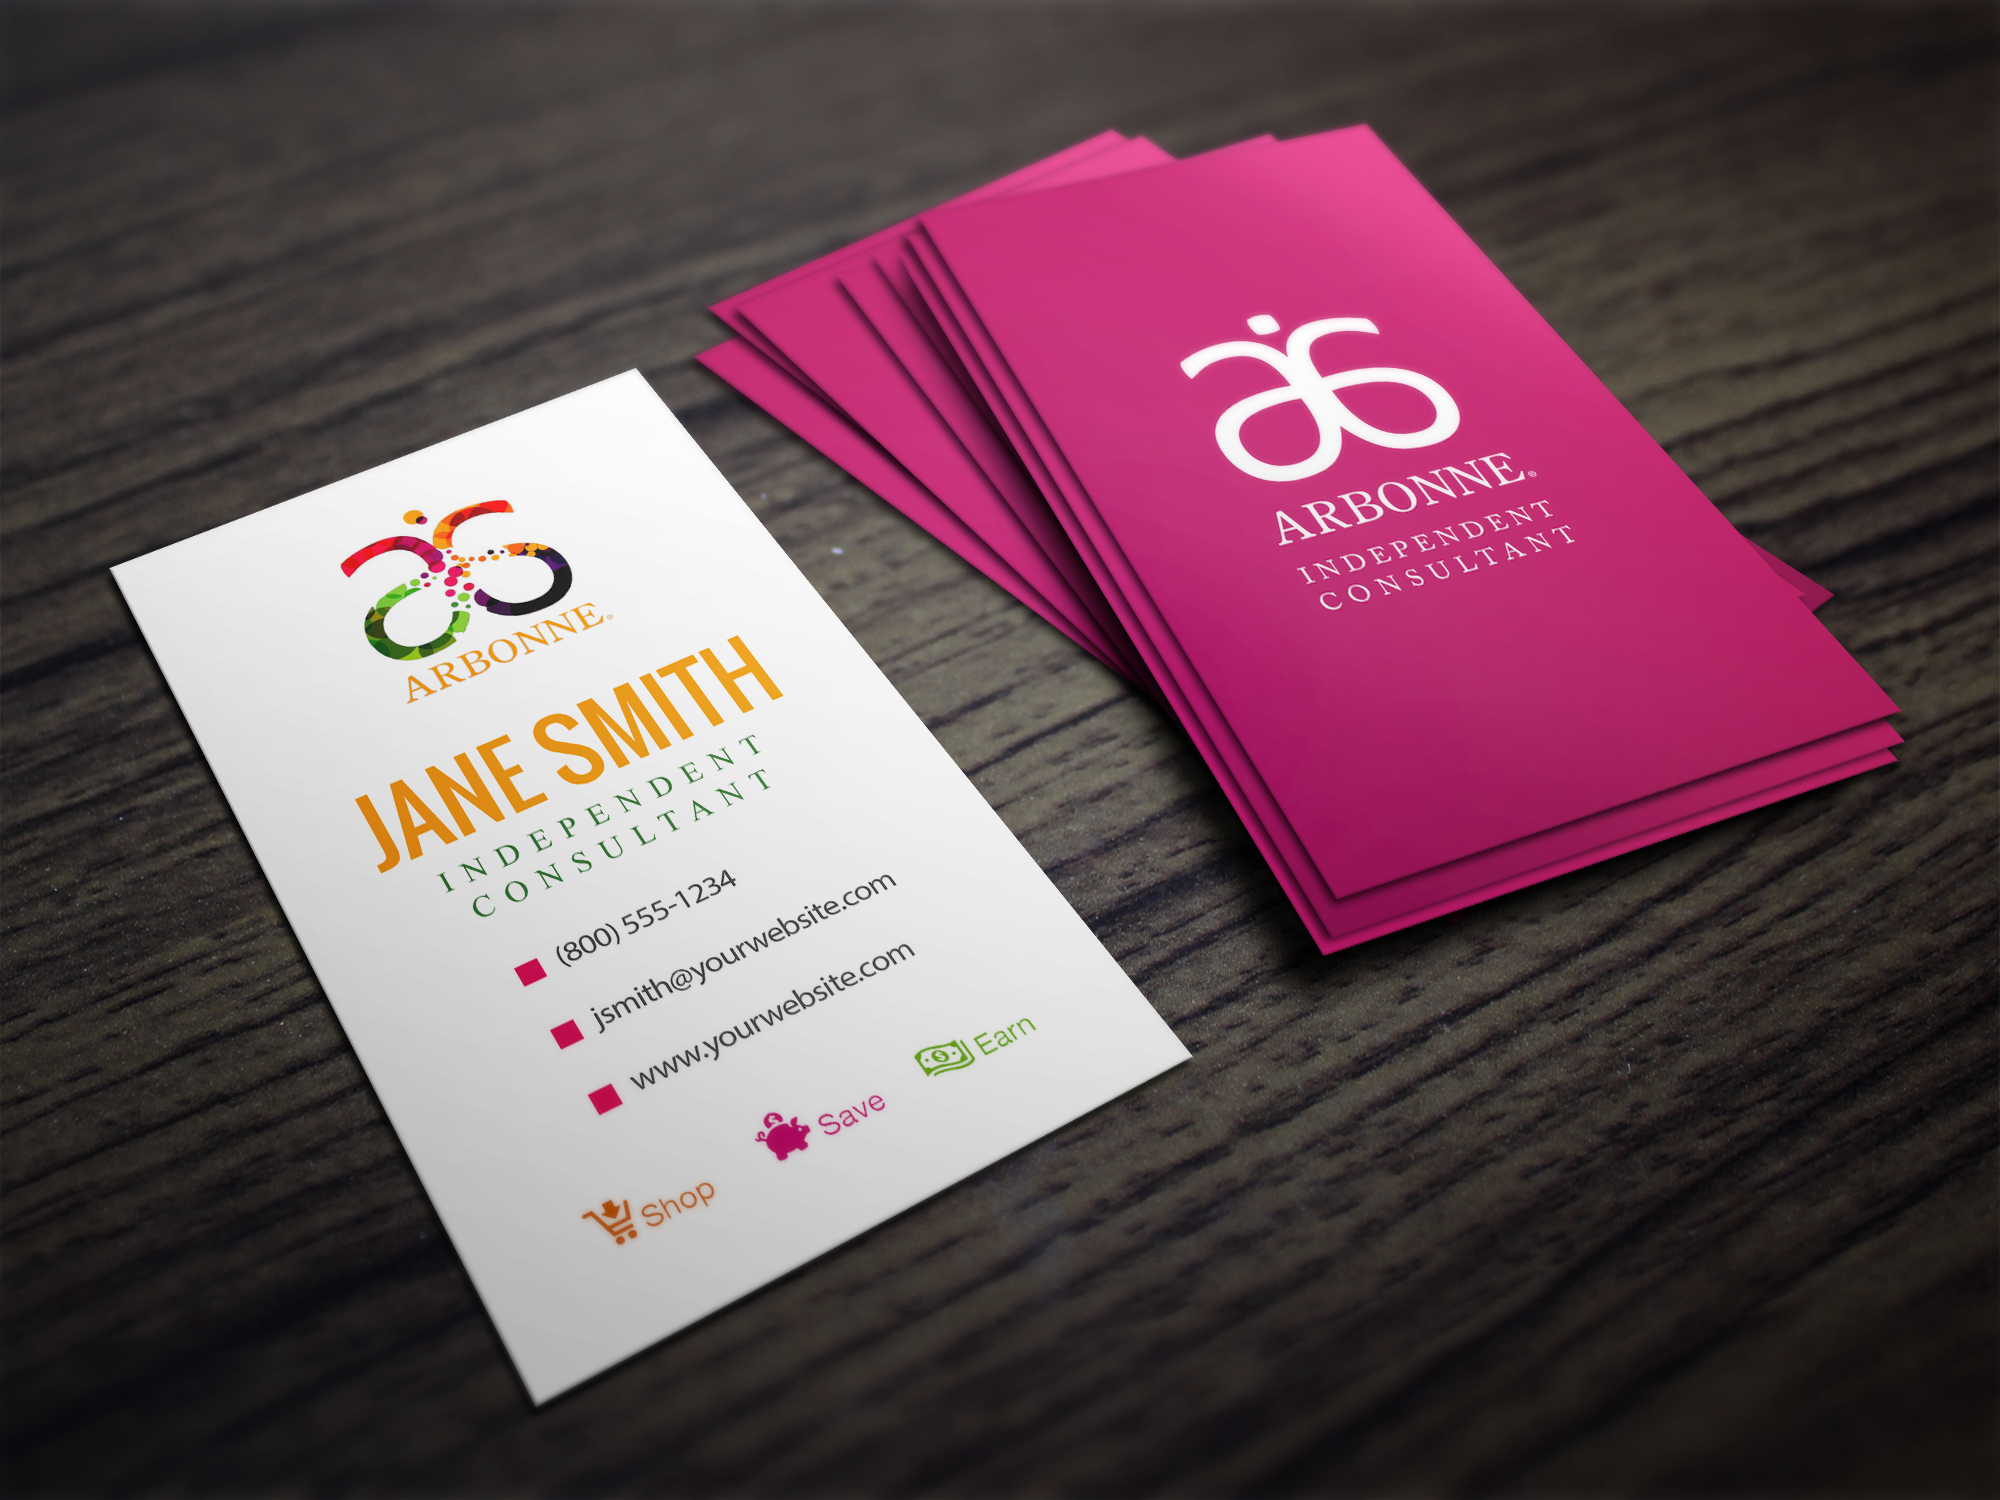 pinmlm cards on arbonne business cards  pinterest  arbonne